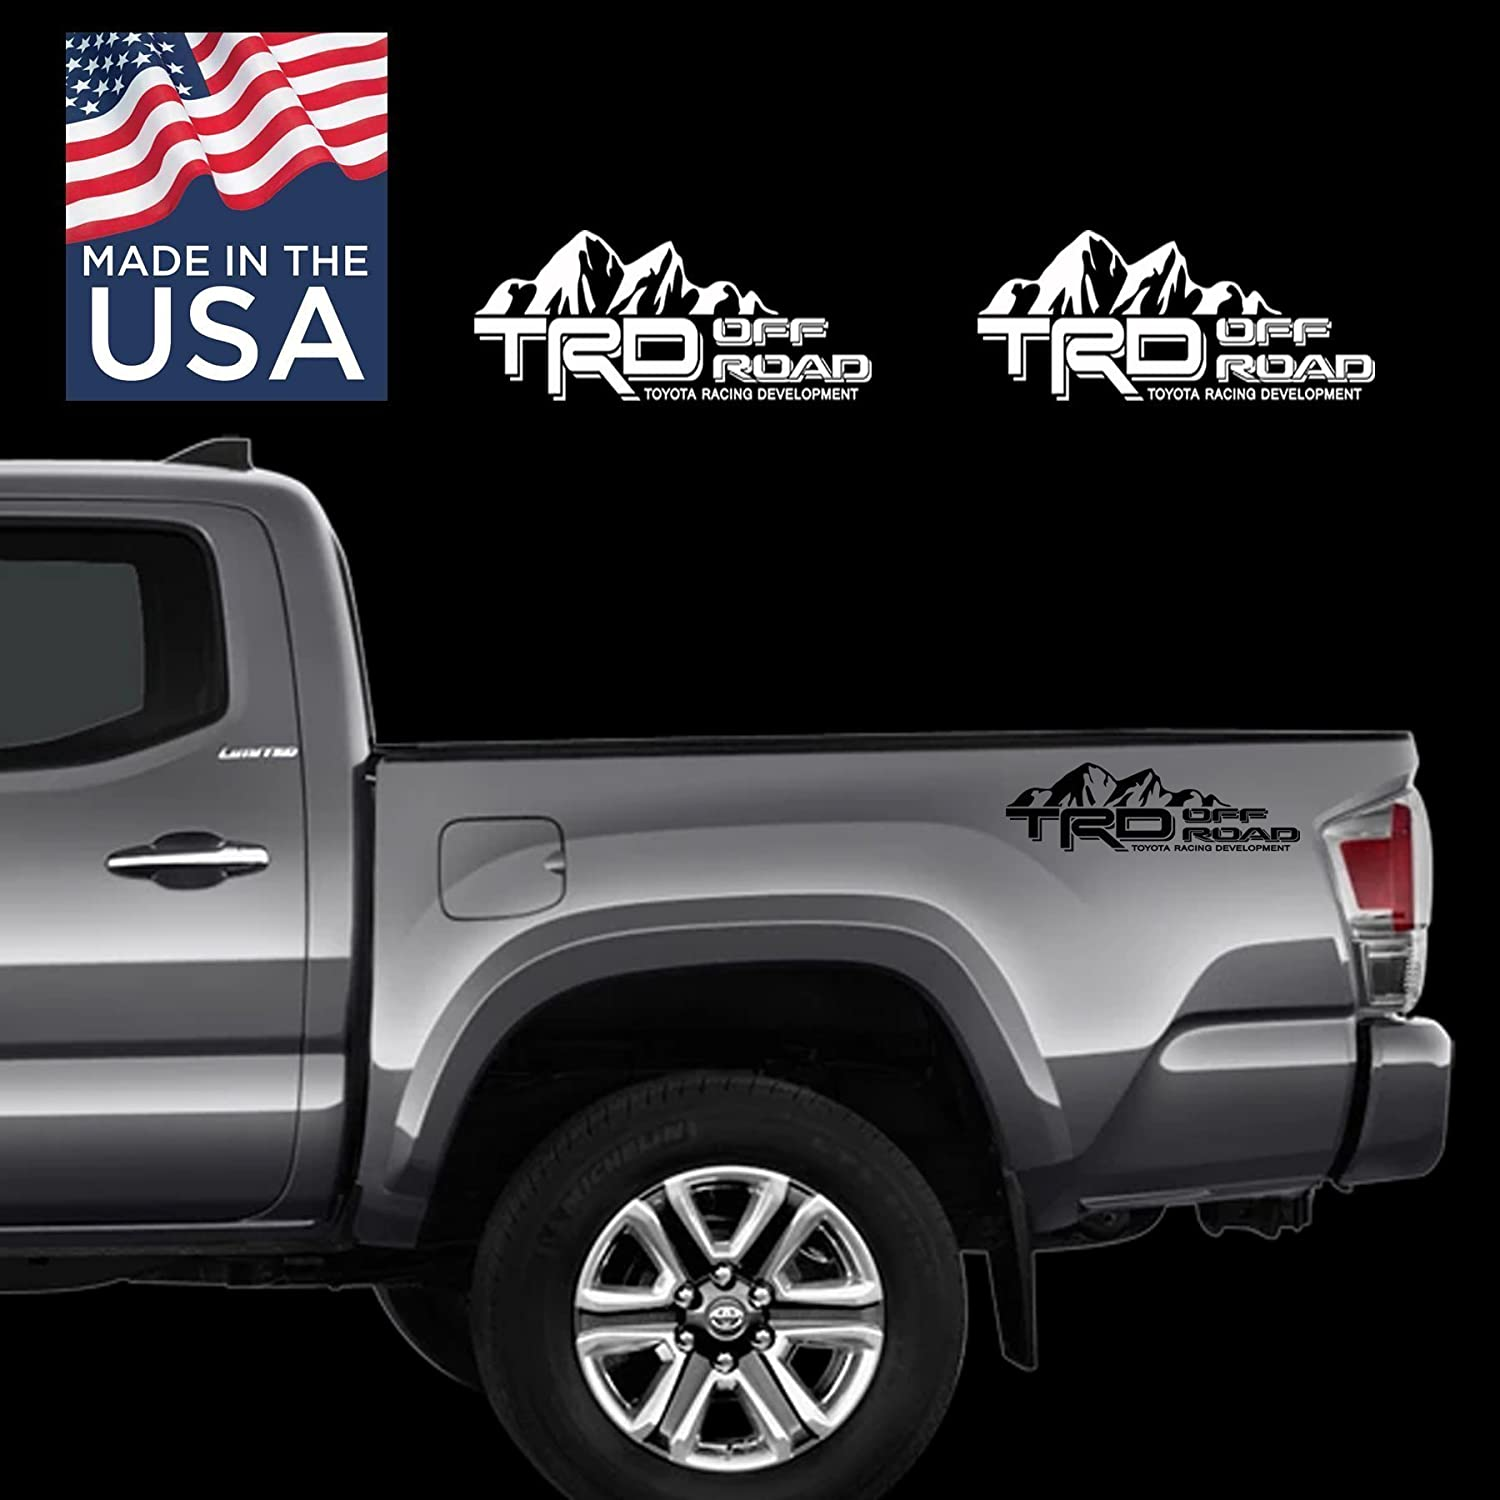 Toyota TRD SUV Car Truck Mountain Off-Road 4x4 Racing Tacoma Decal Vinyl Sticker PAIR